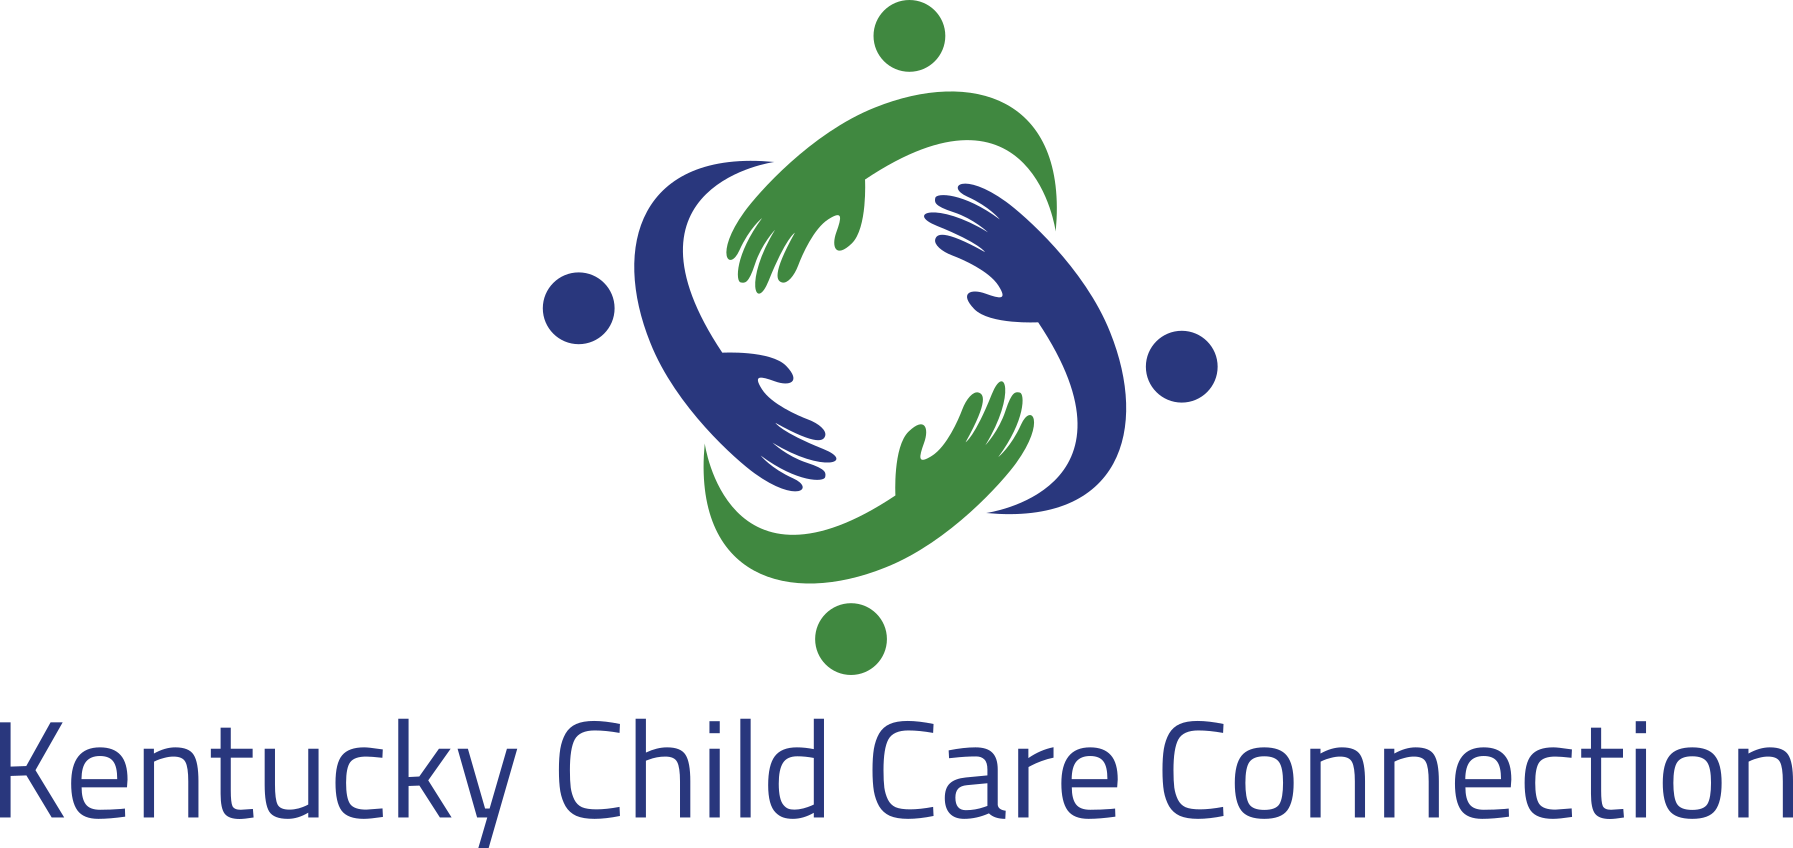 Kentucky Child Care Connection Online Training